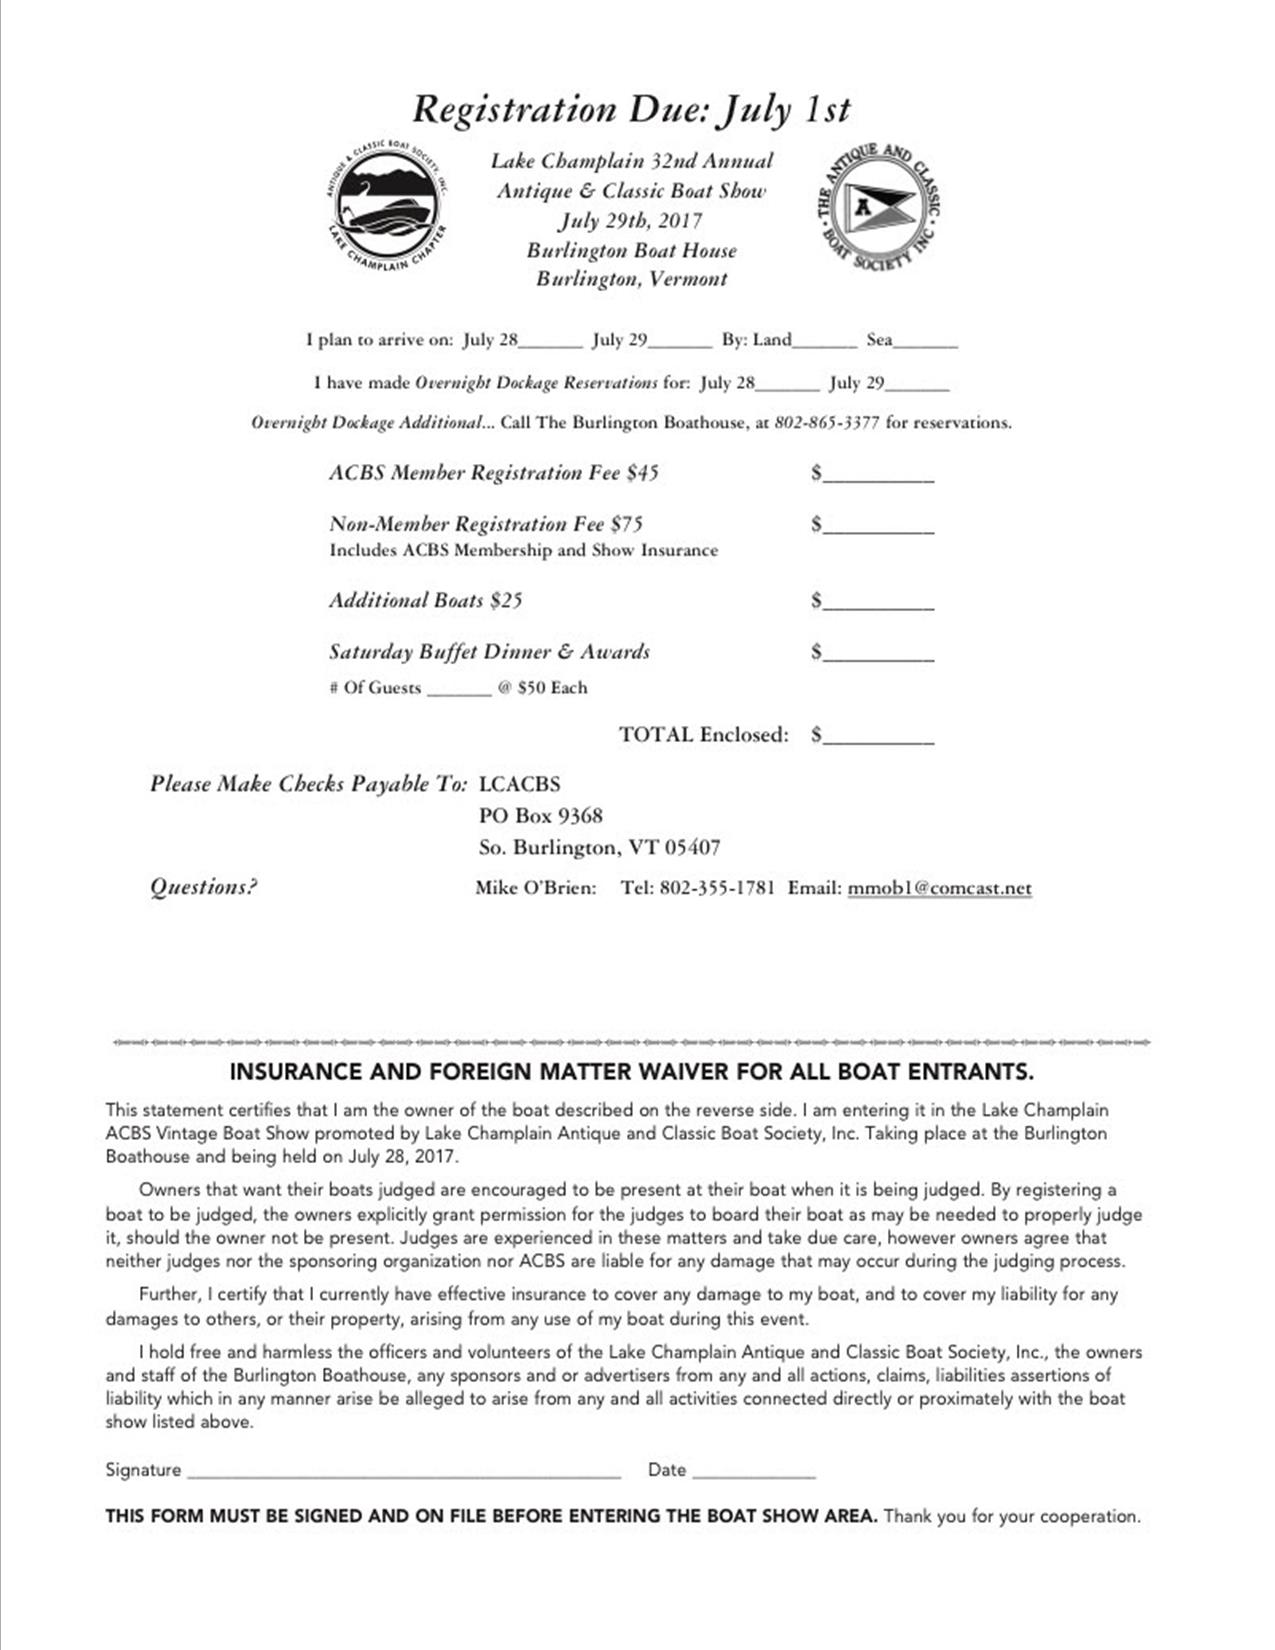 LCACBS Newletter 6.1.18 Page 6.jpg